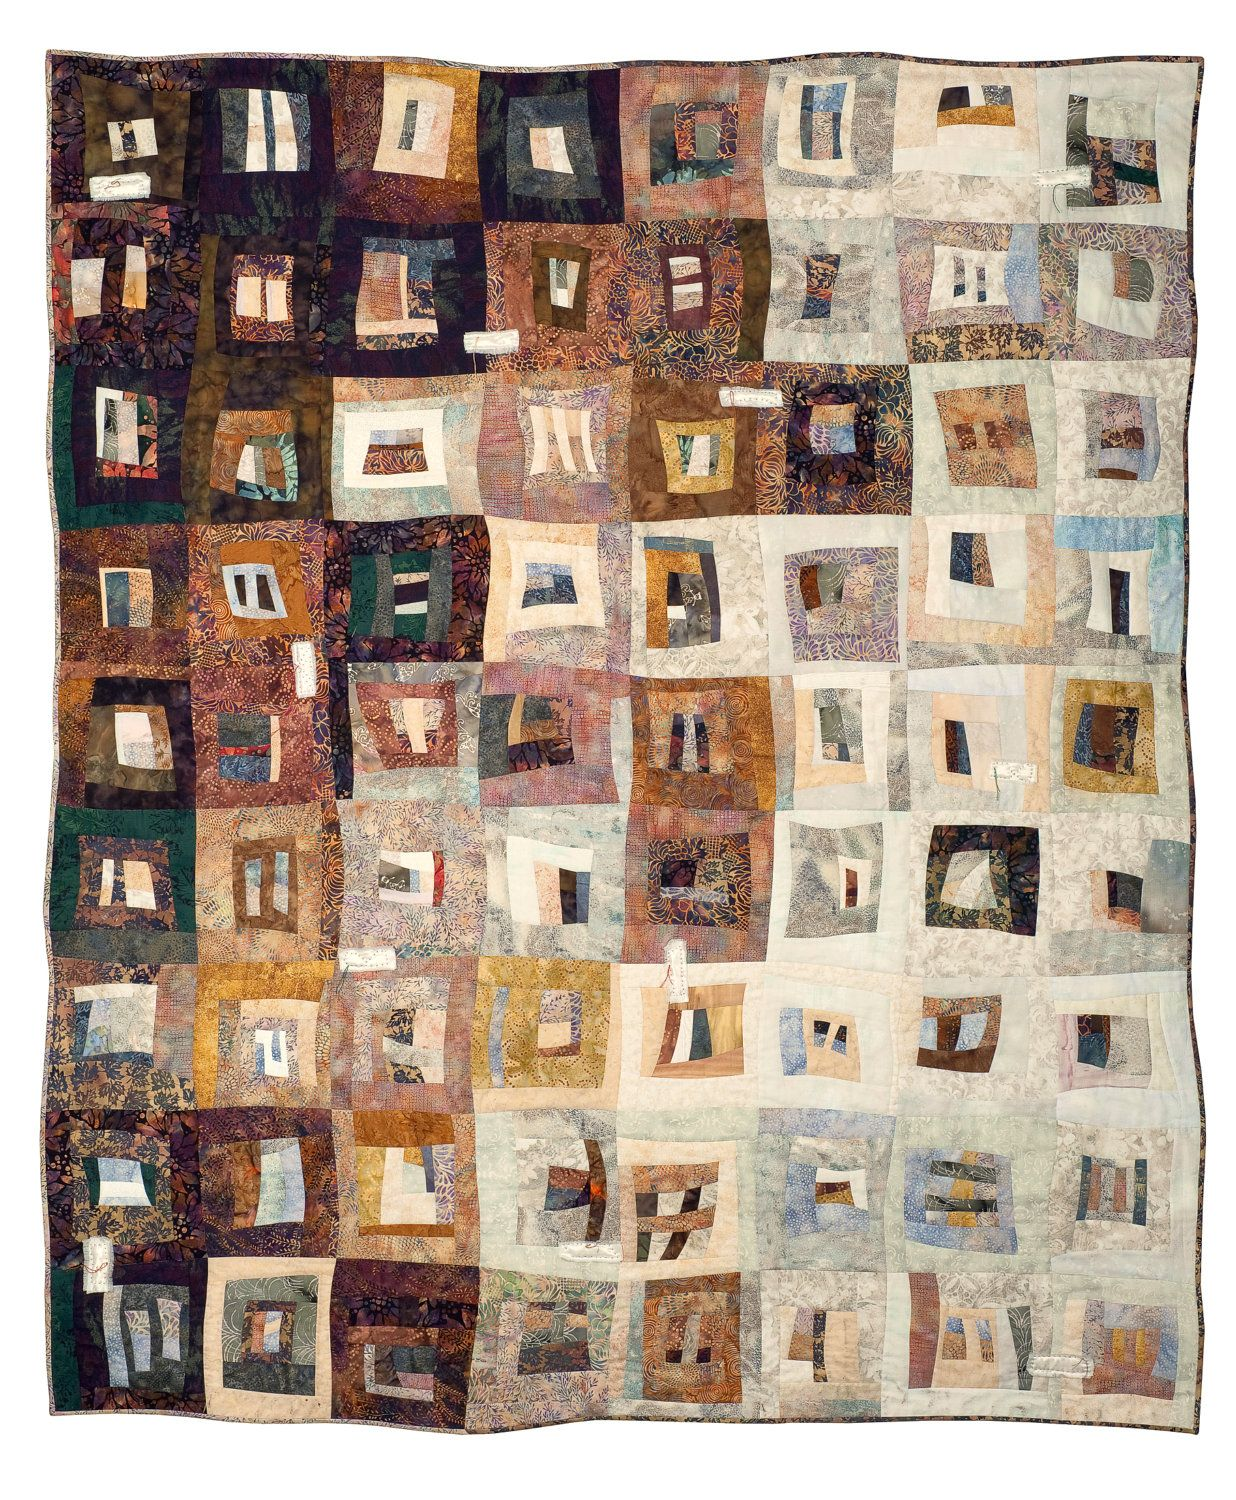 Fused Lives art quilt